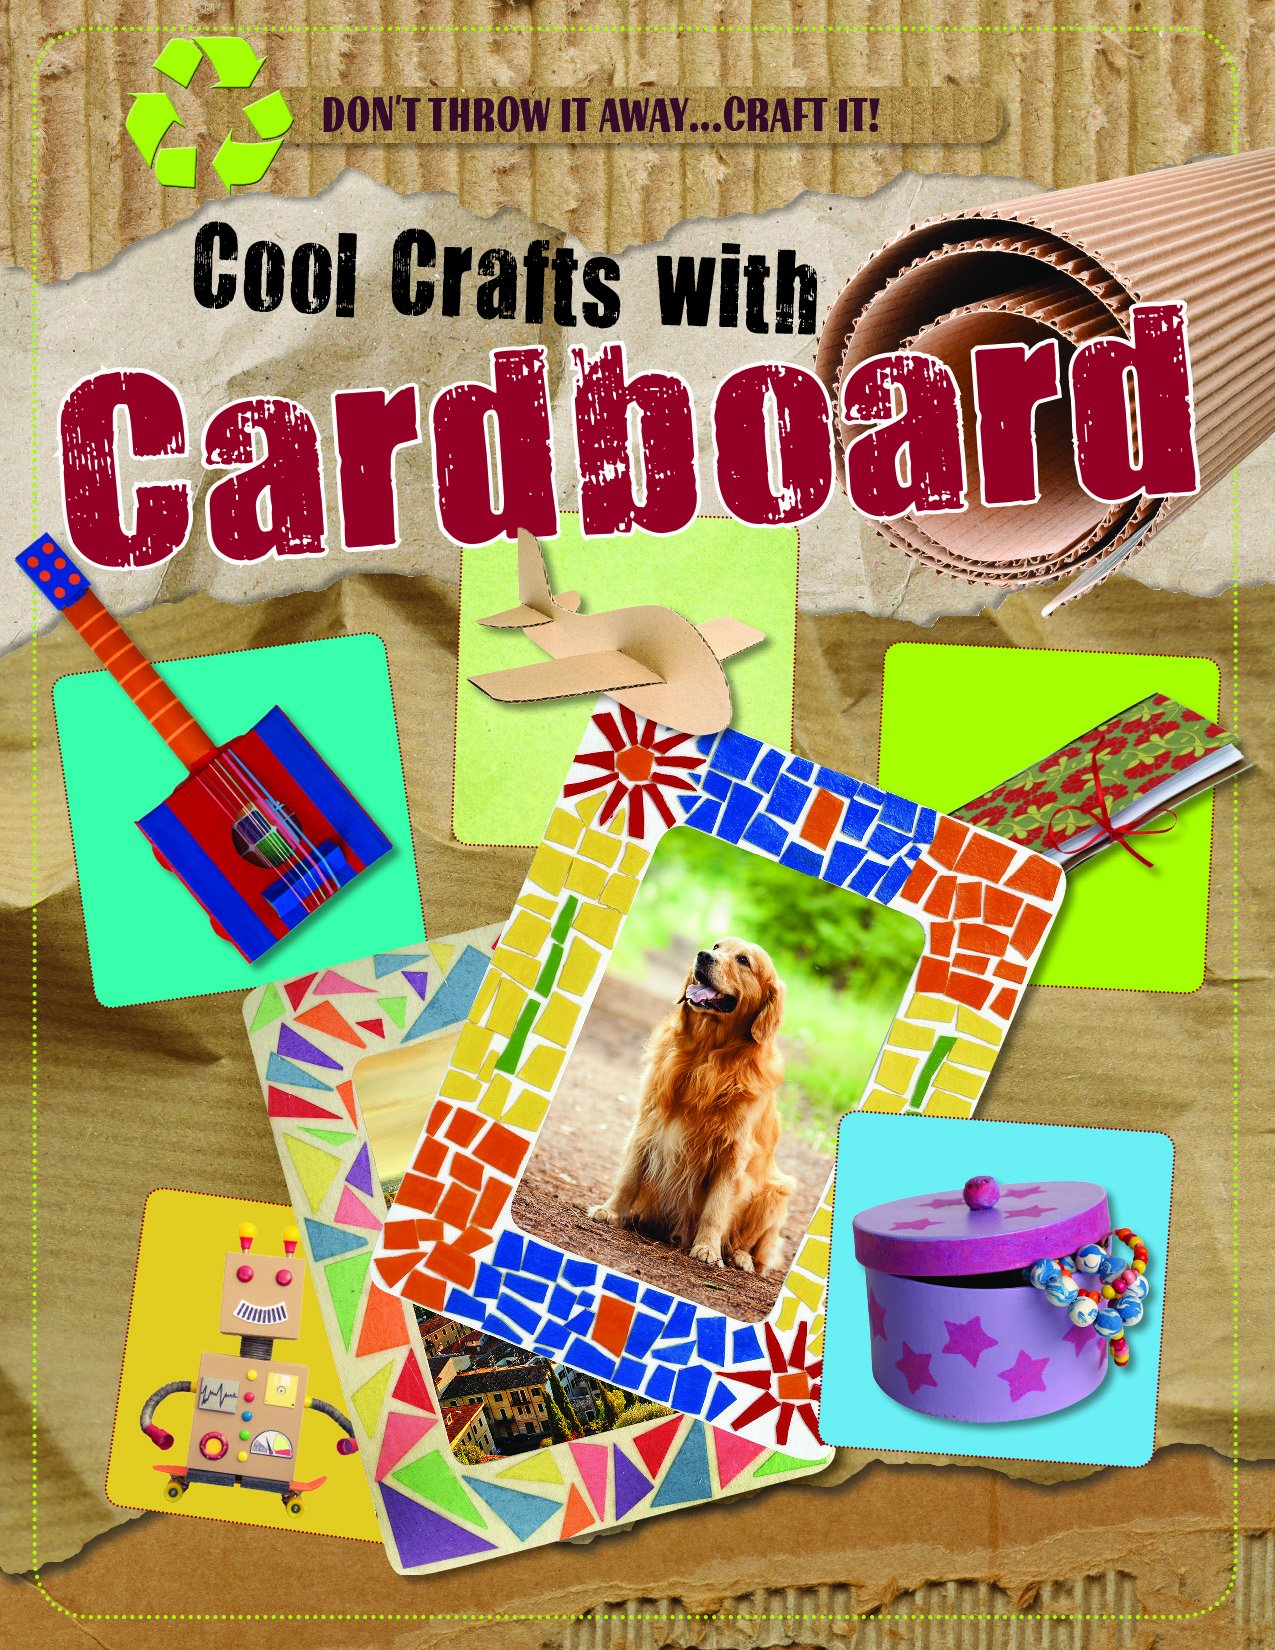 Cool Crafts With Cardboard (Don't Throw It Away...Craft It!)